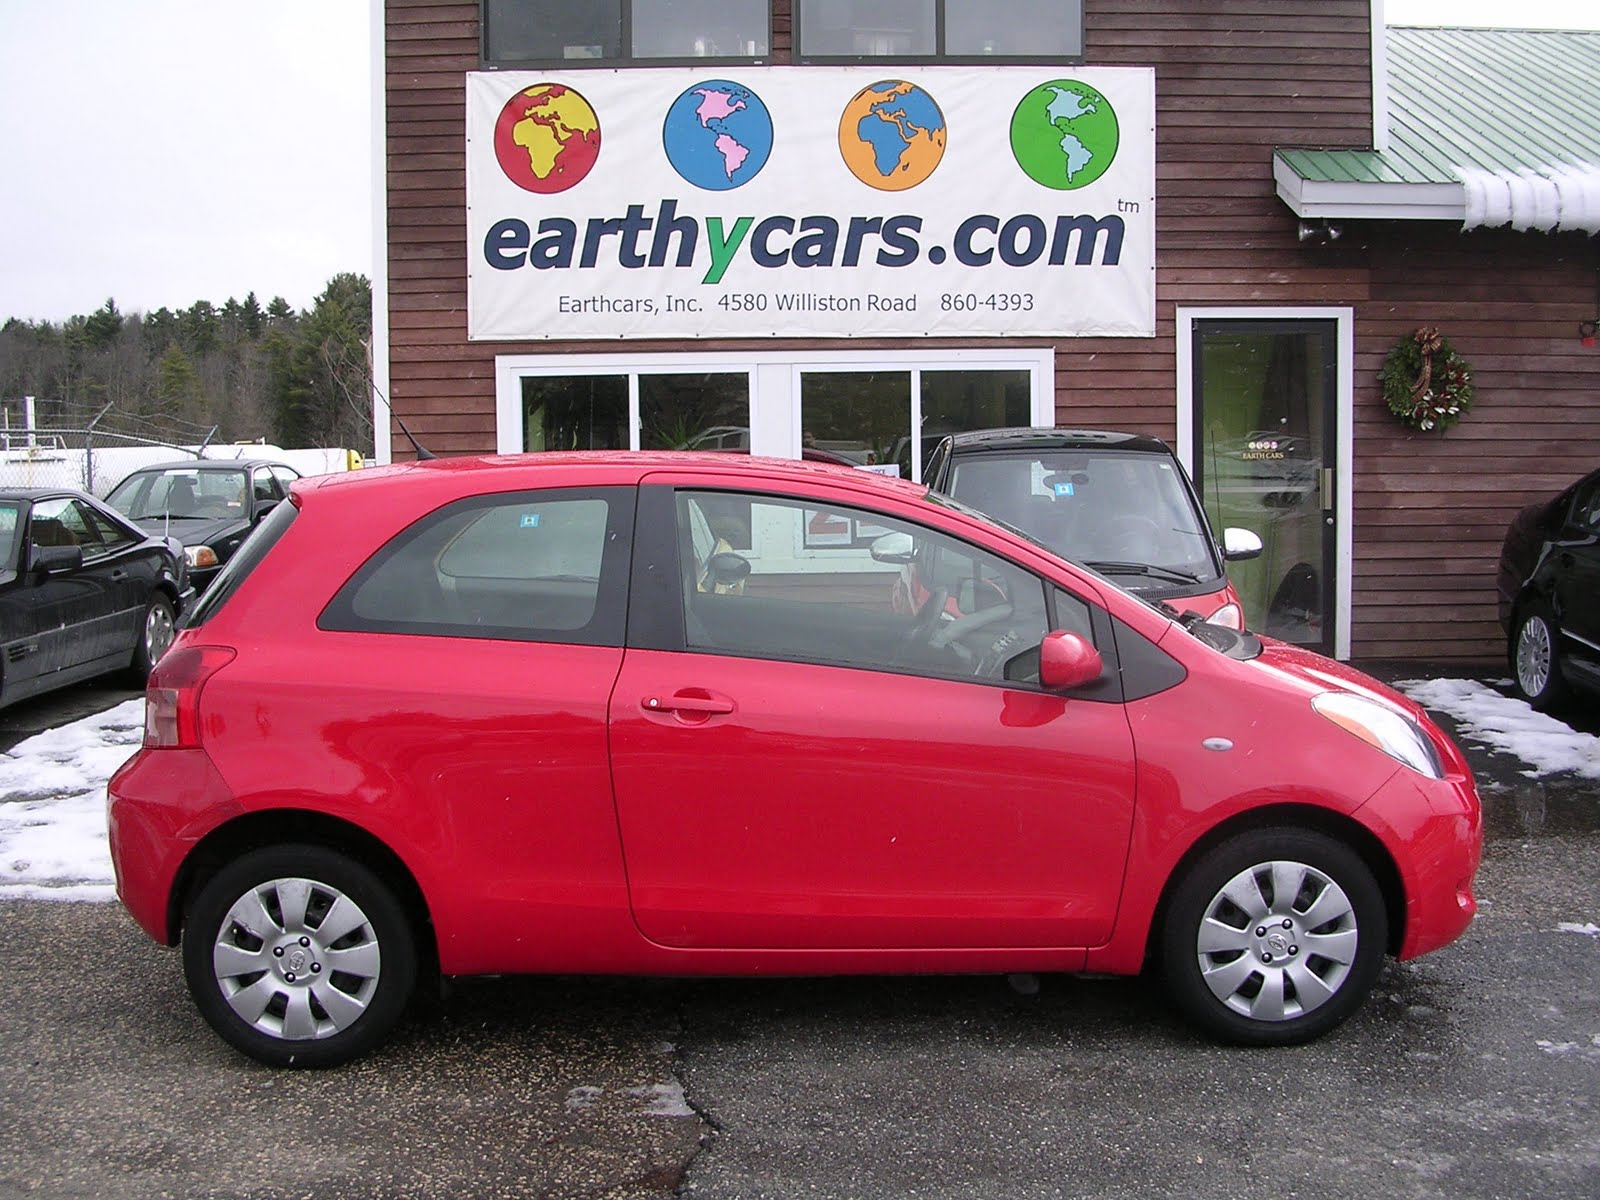 earthy cars blog earthy car of the week 2008 red toyota yaris hatchback. Black Bedroom Furniture Sets. Home Design Ideas